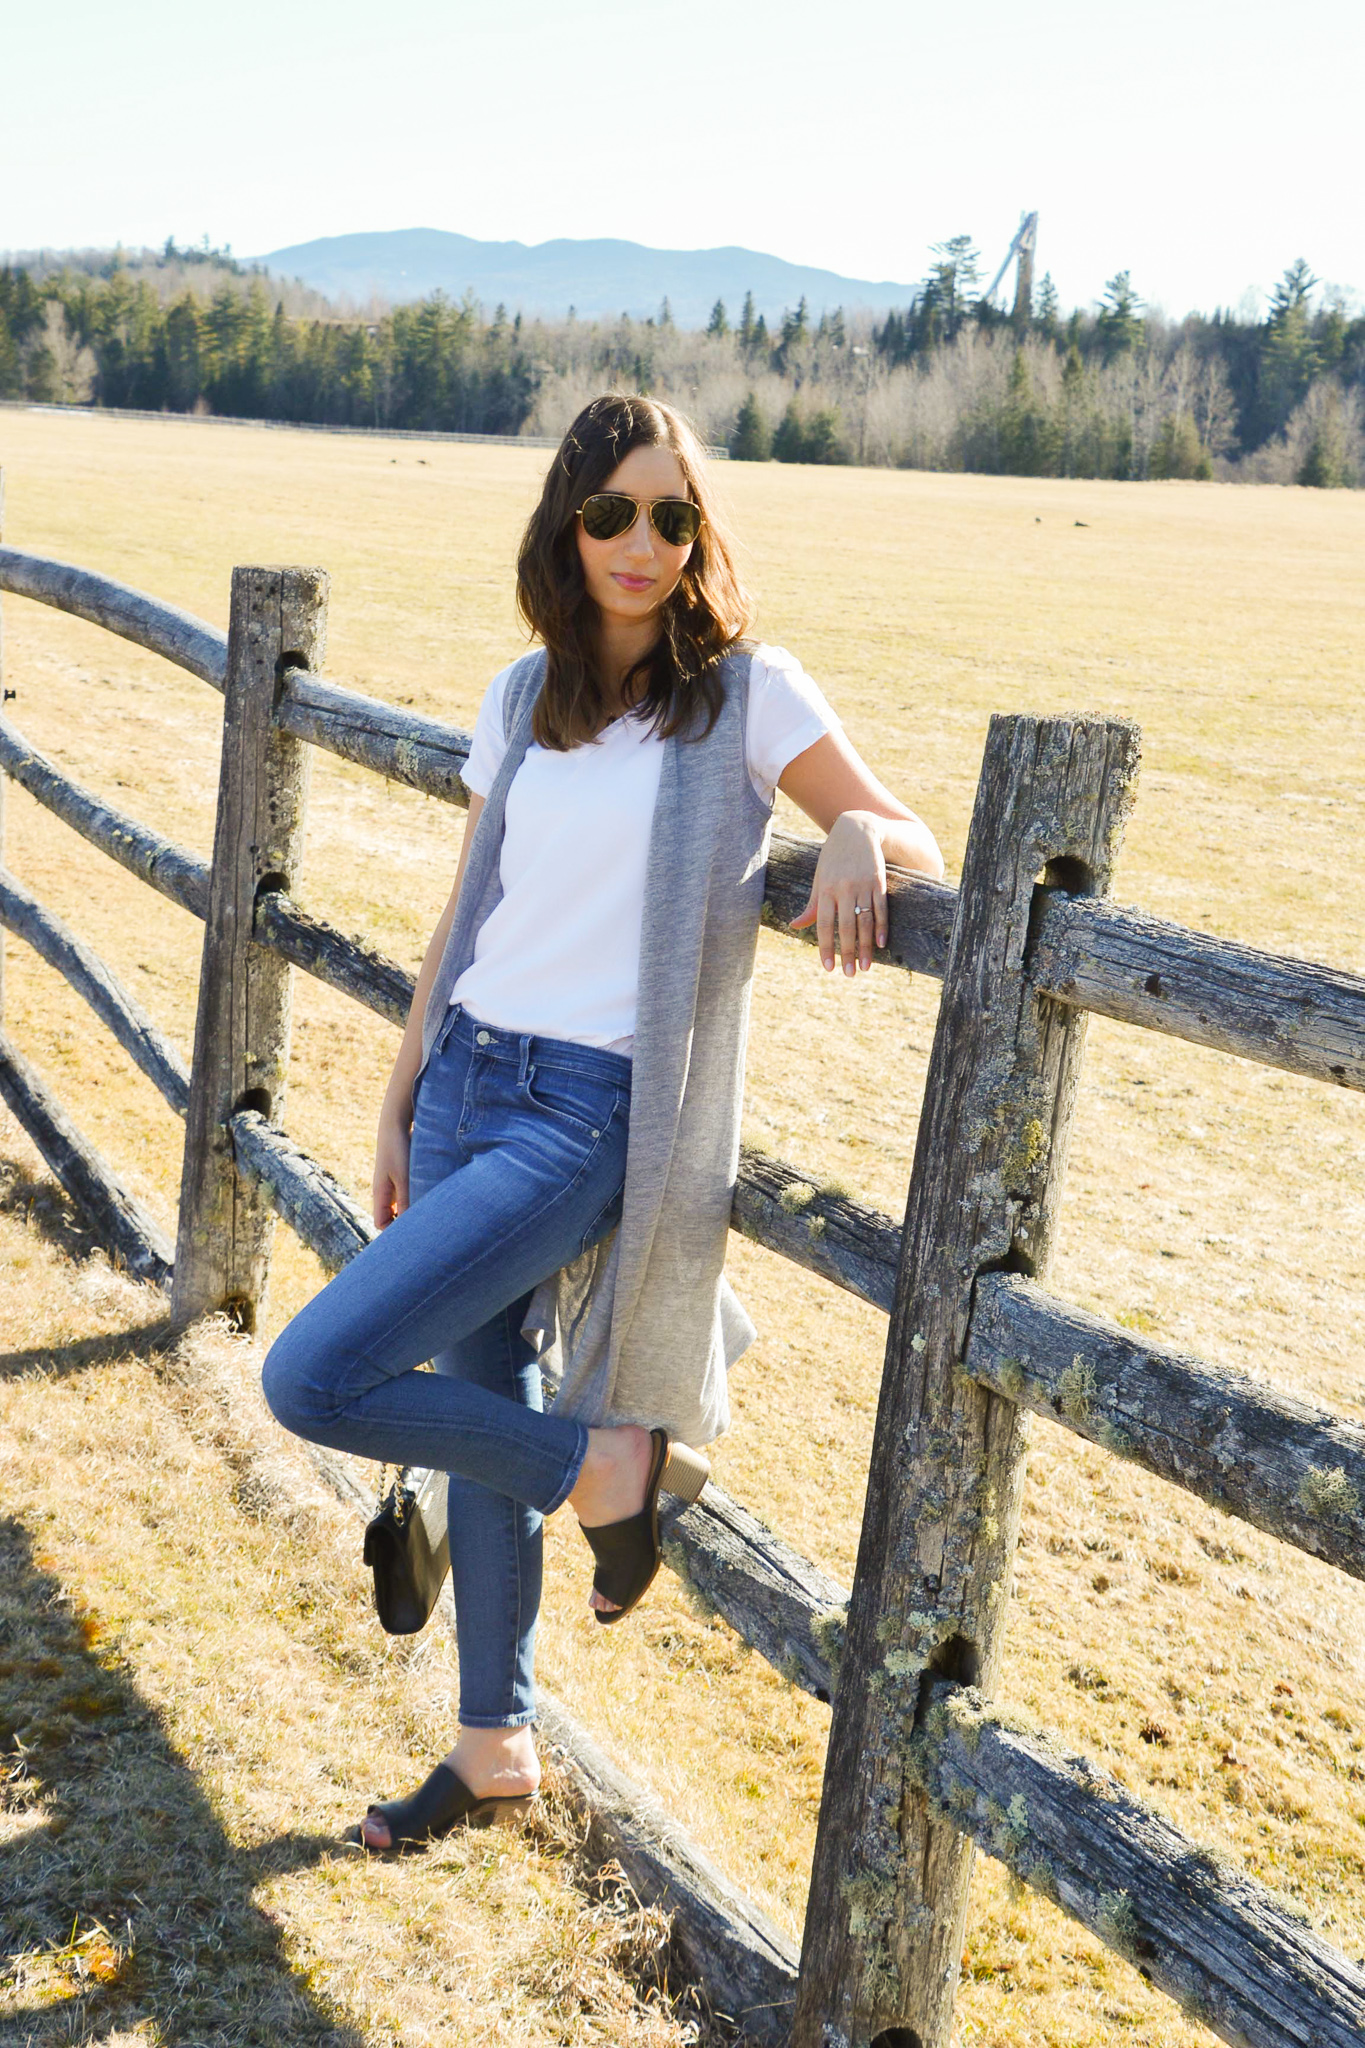 Leaning against a fence wearing medium wash jeans, black mules, white t-shirt and a grey duster